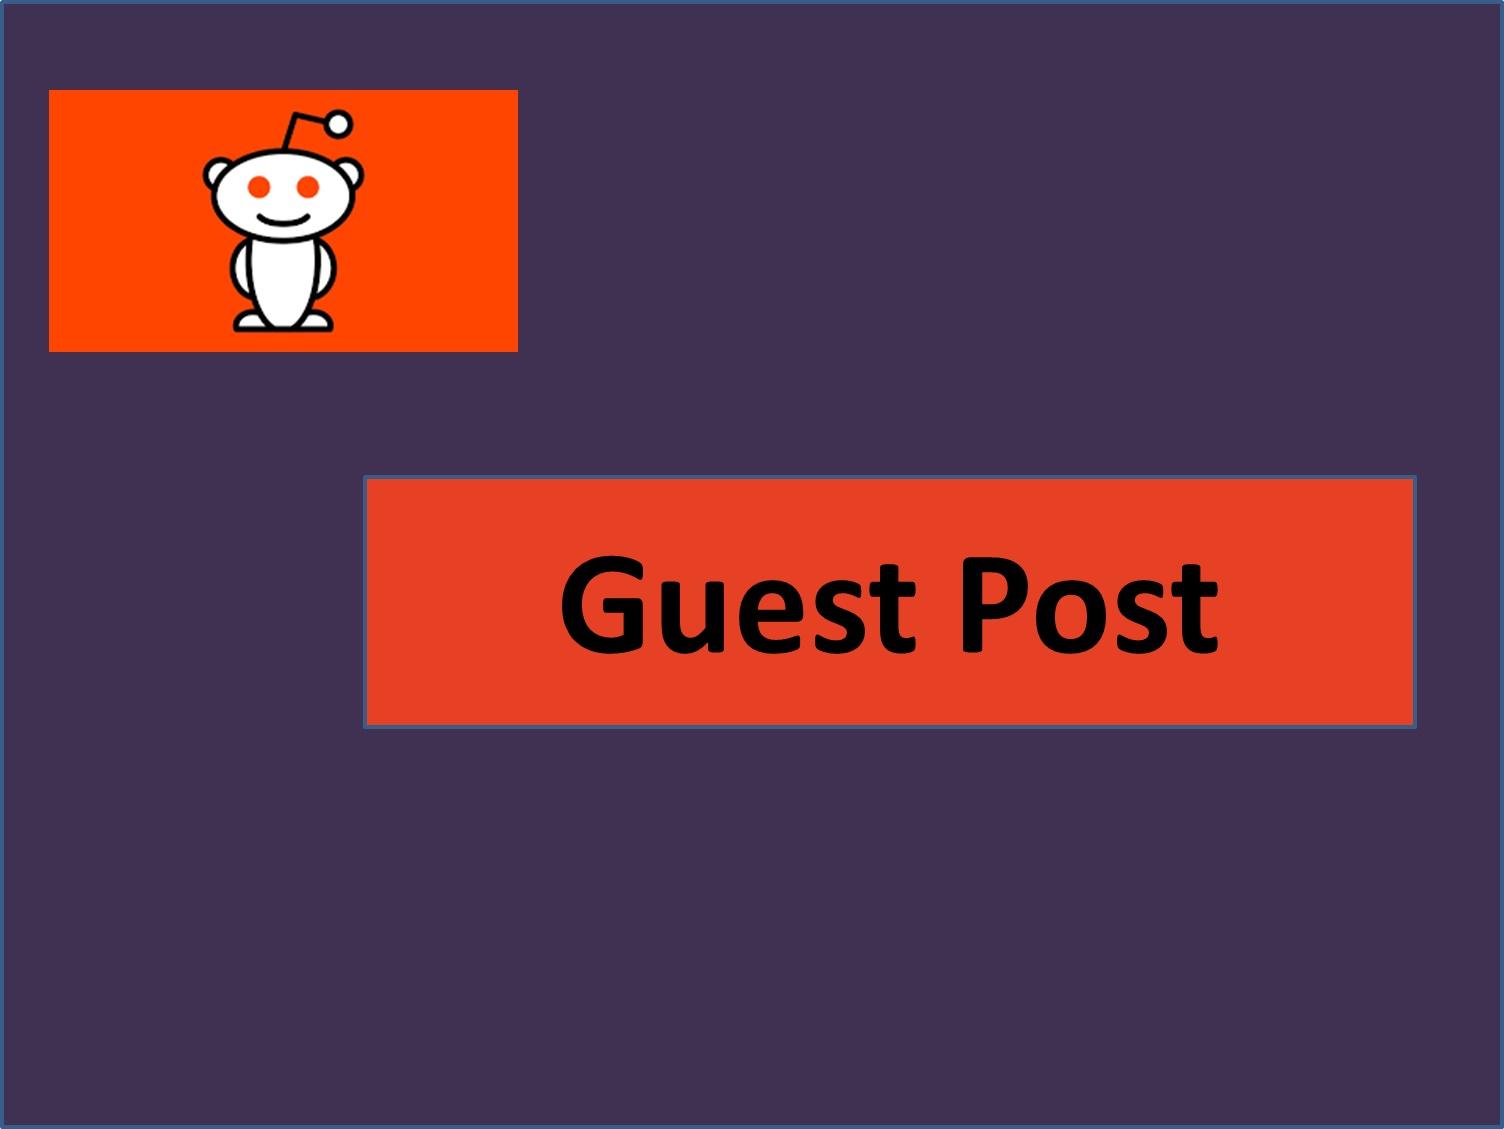 Promote your website with 5 unique Reddit Guest Post